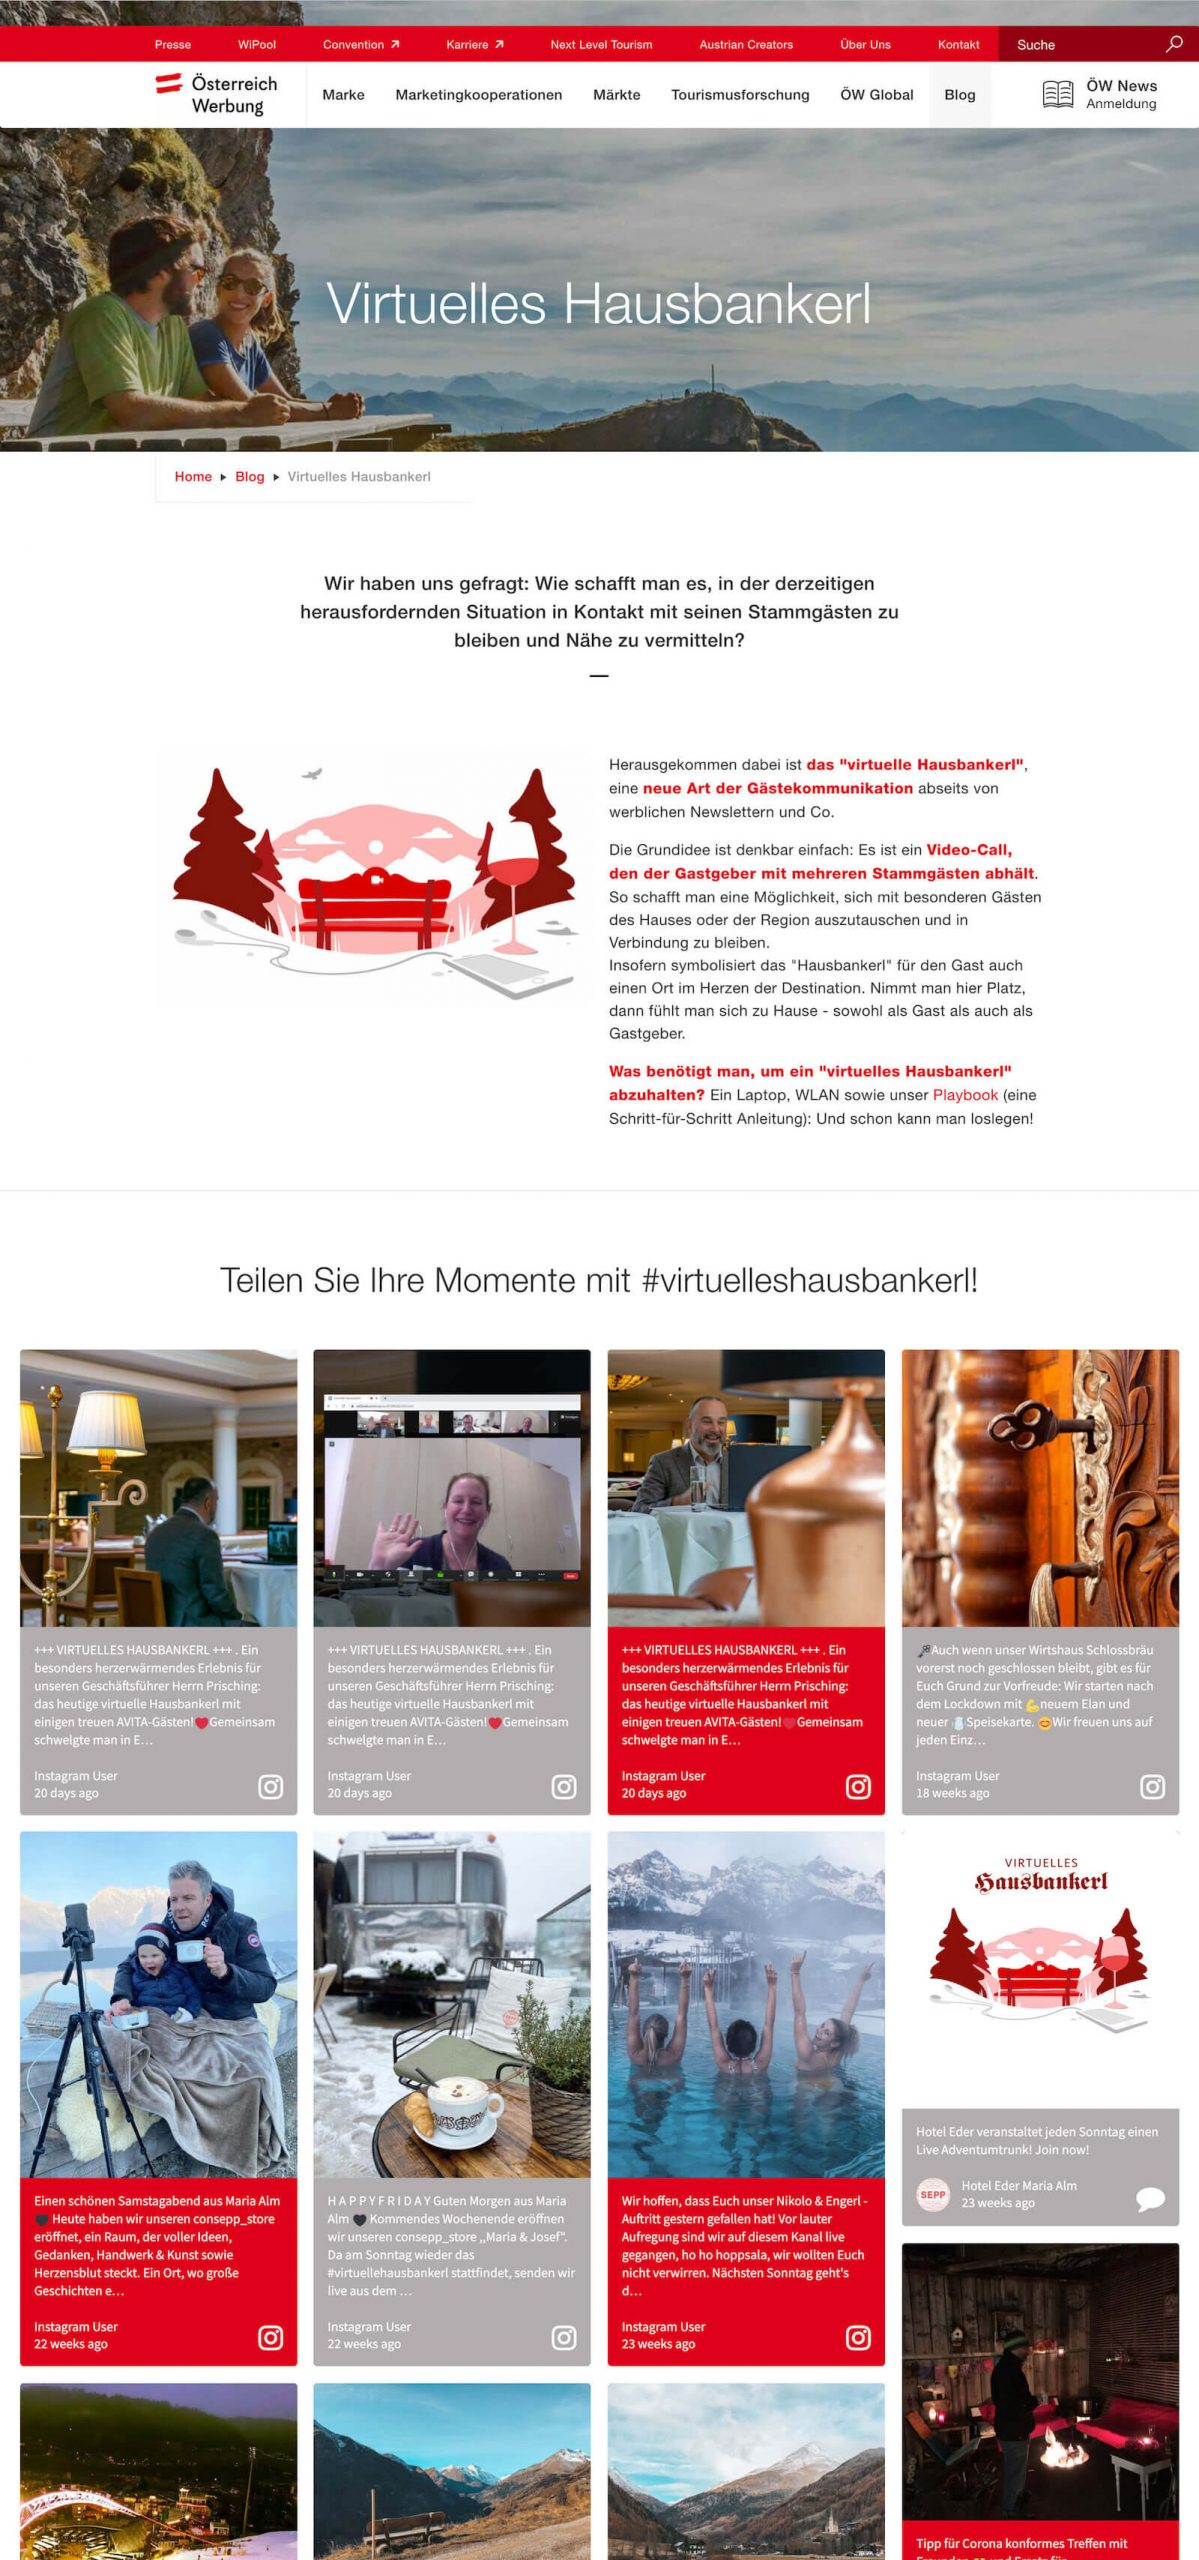 Screenshot of the Virtuelles Hausbankerl blog post showing basic information about the project and the embedded social wall.